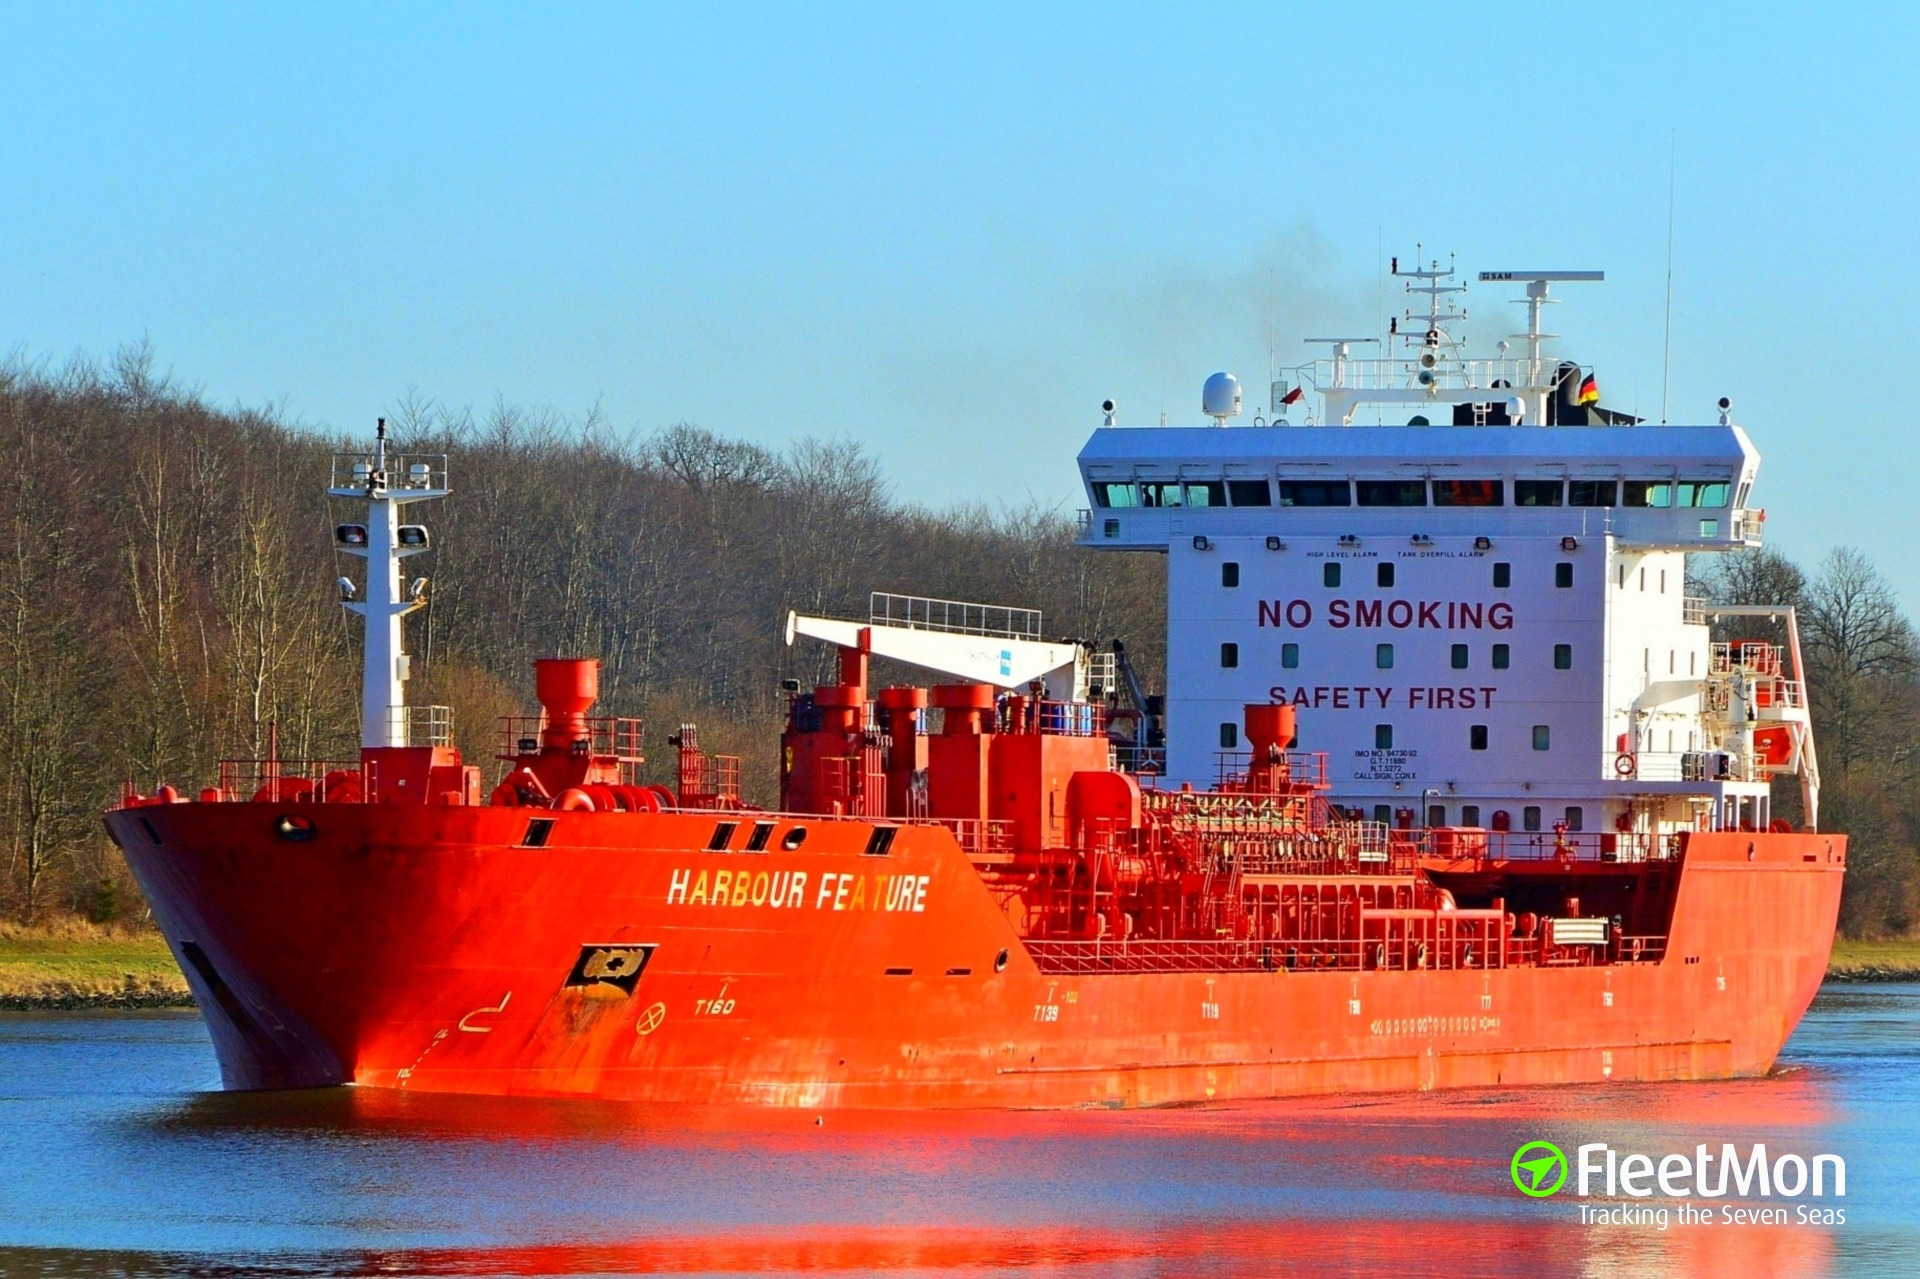 Nordic's tanker Harbour Feature allided with bridge in Portsmouth, US